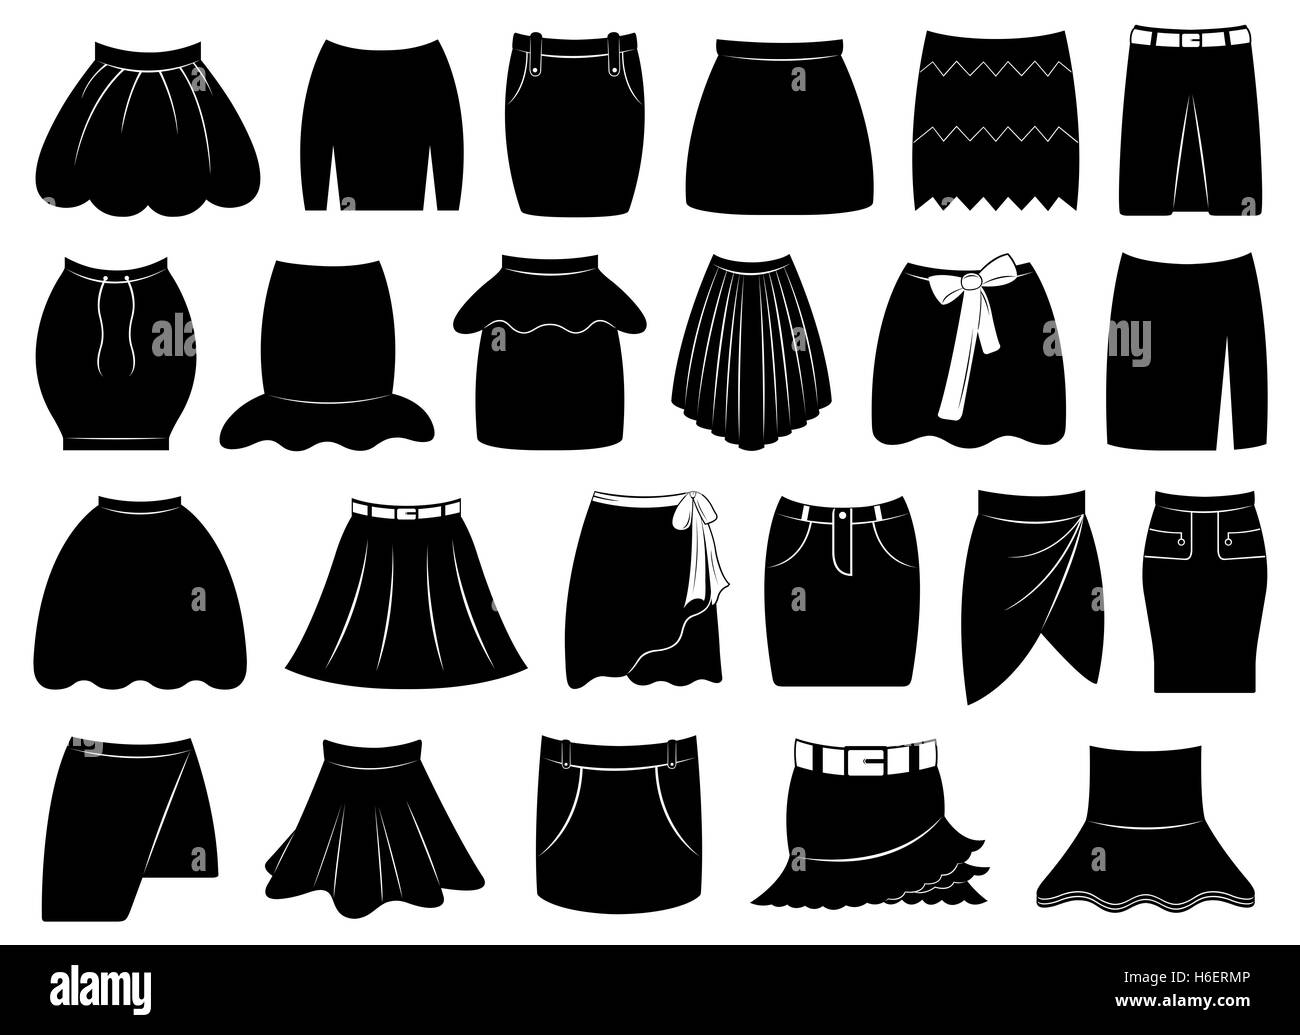 Set of different skirts - Stock Image